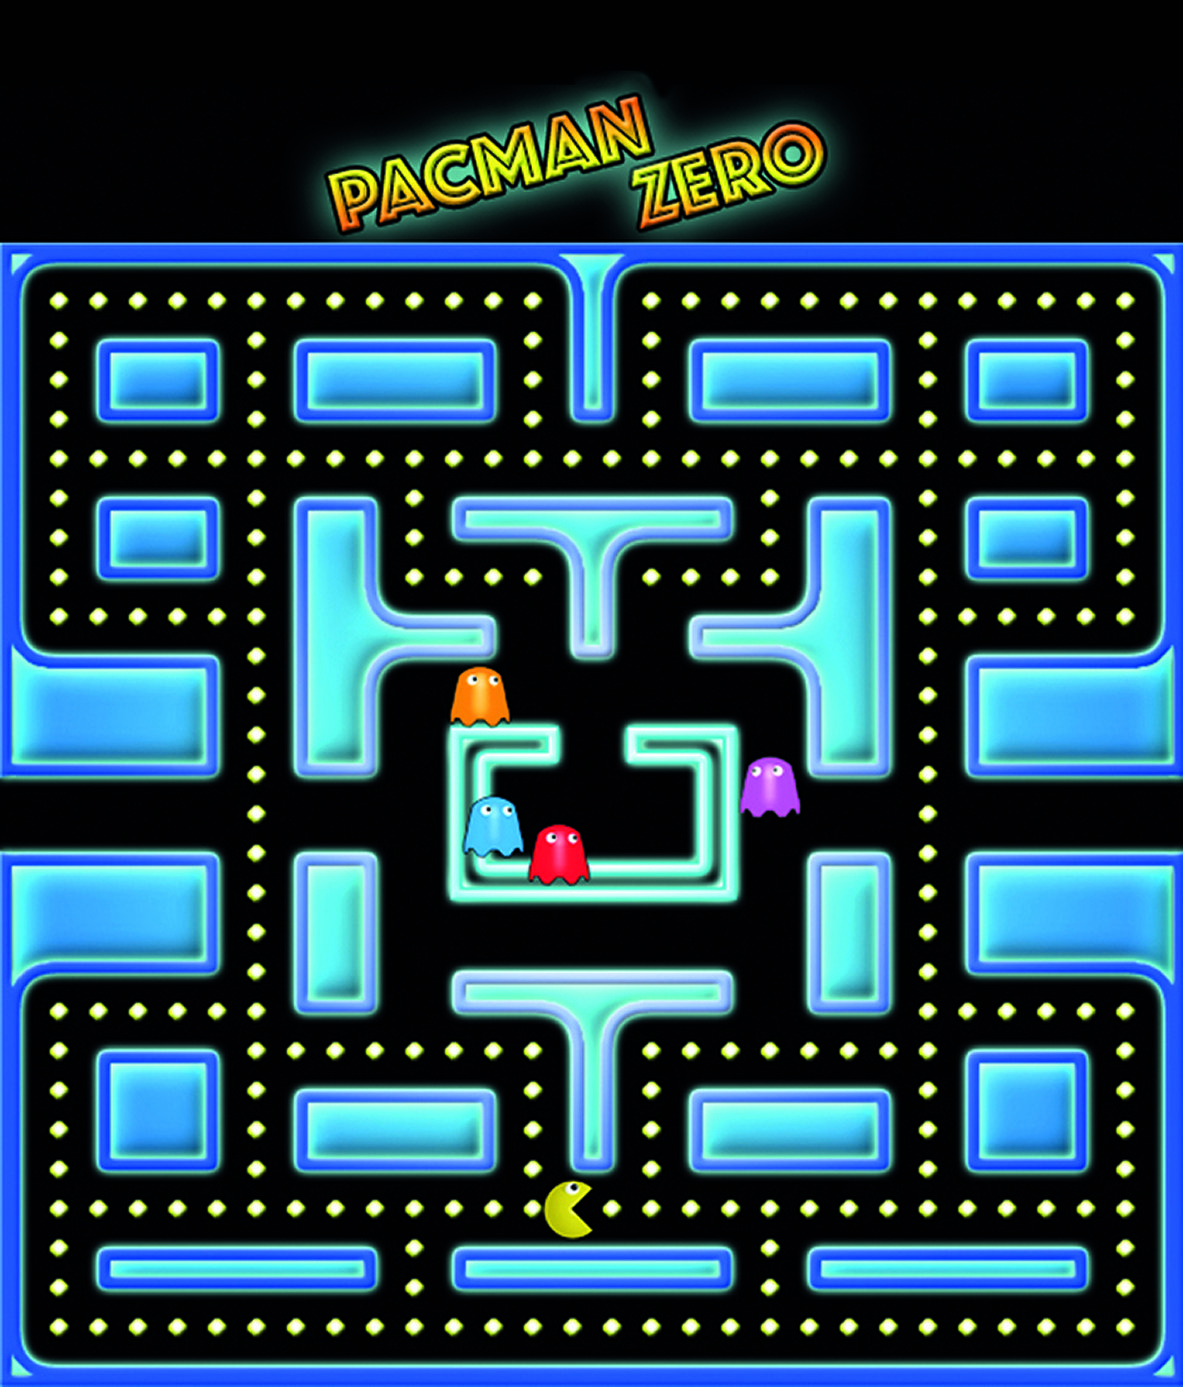 The maze is made of corridors and maze walls. Ghosts move around the maze, looking for Pac-Man. The player is represented by the Pac-Man character that moves around the maze, eating dots